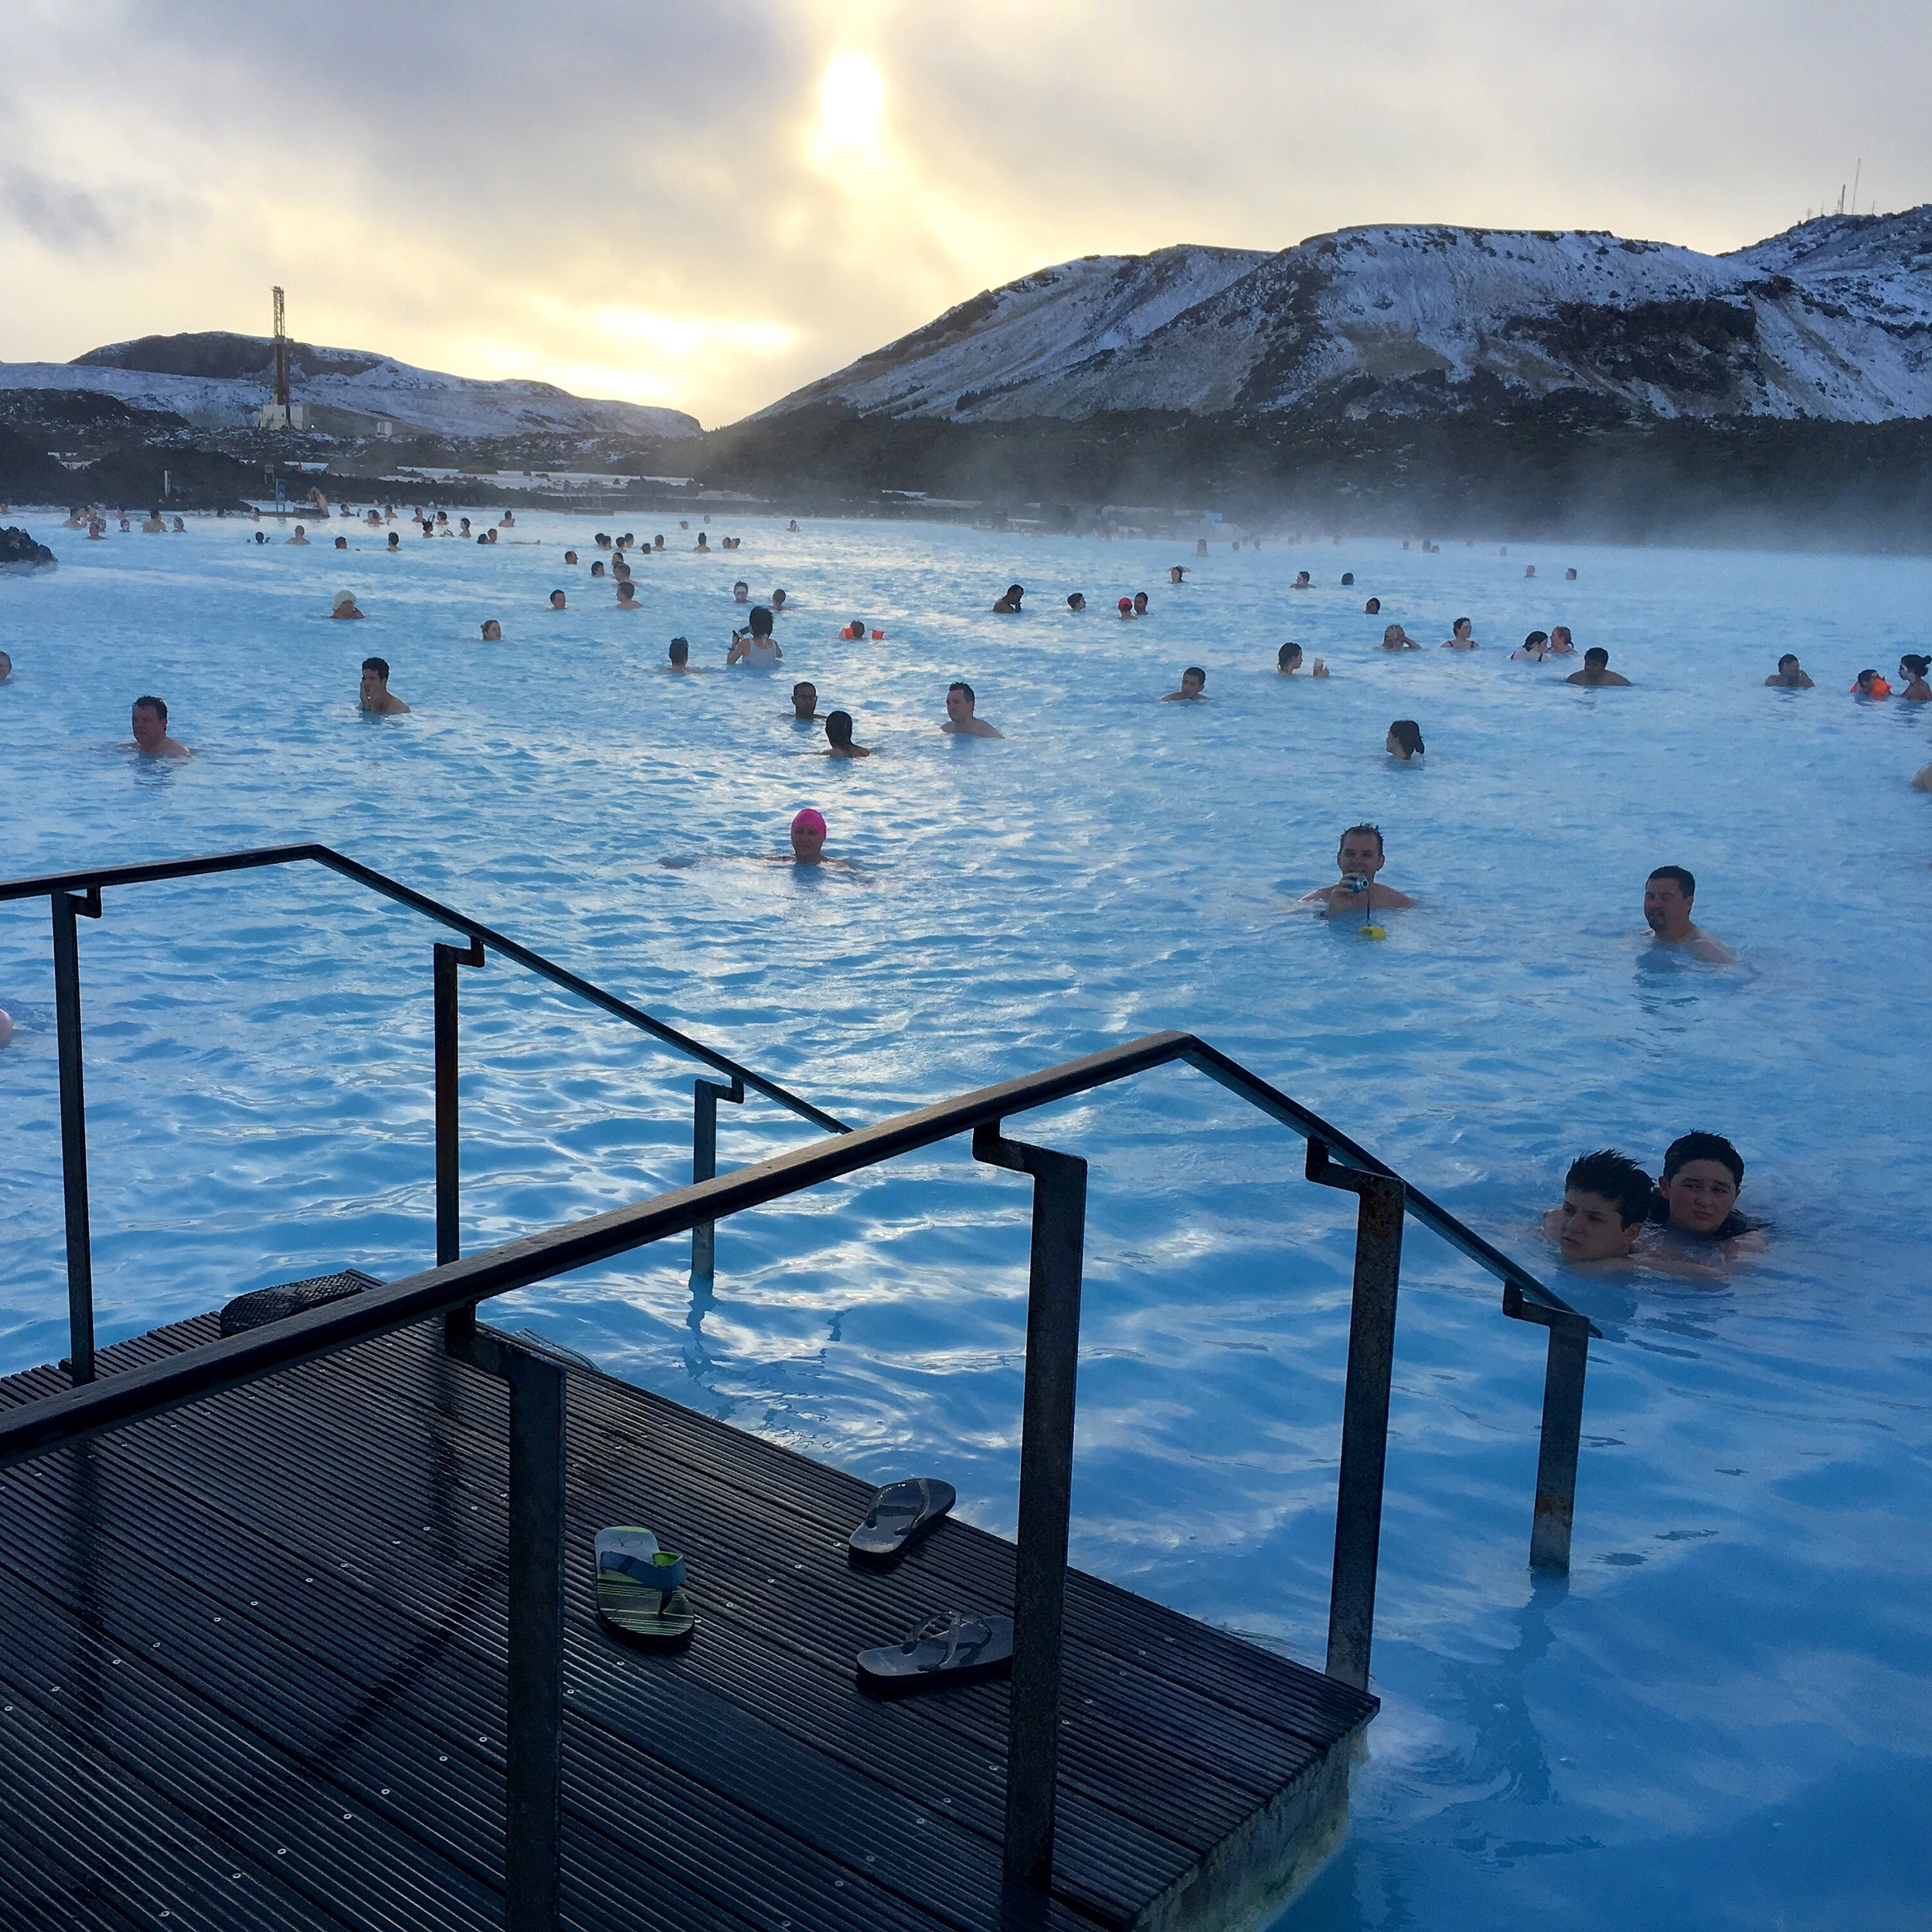 The Blue Lagoon-A MUST SEE when in Iceland